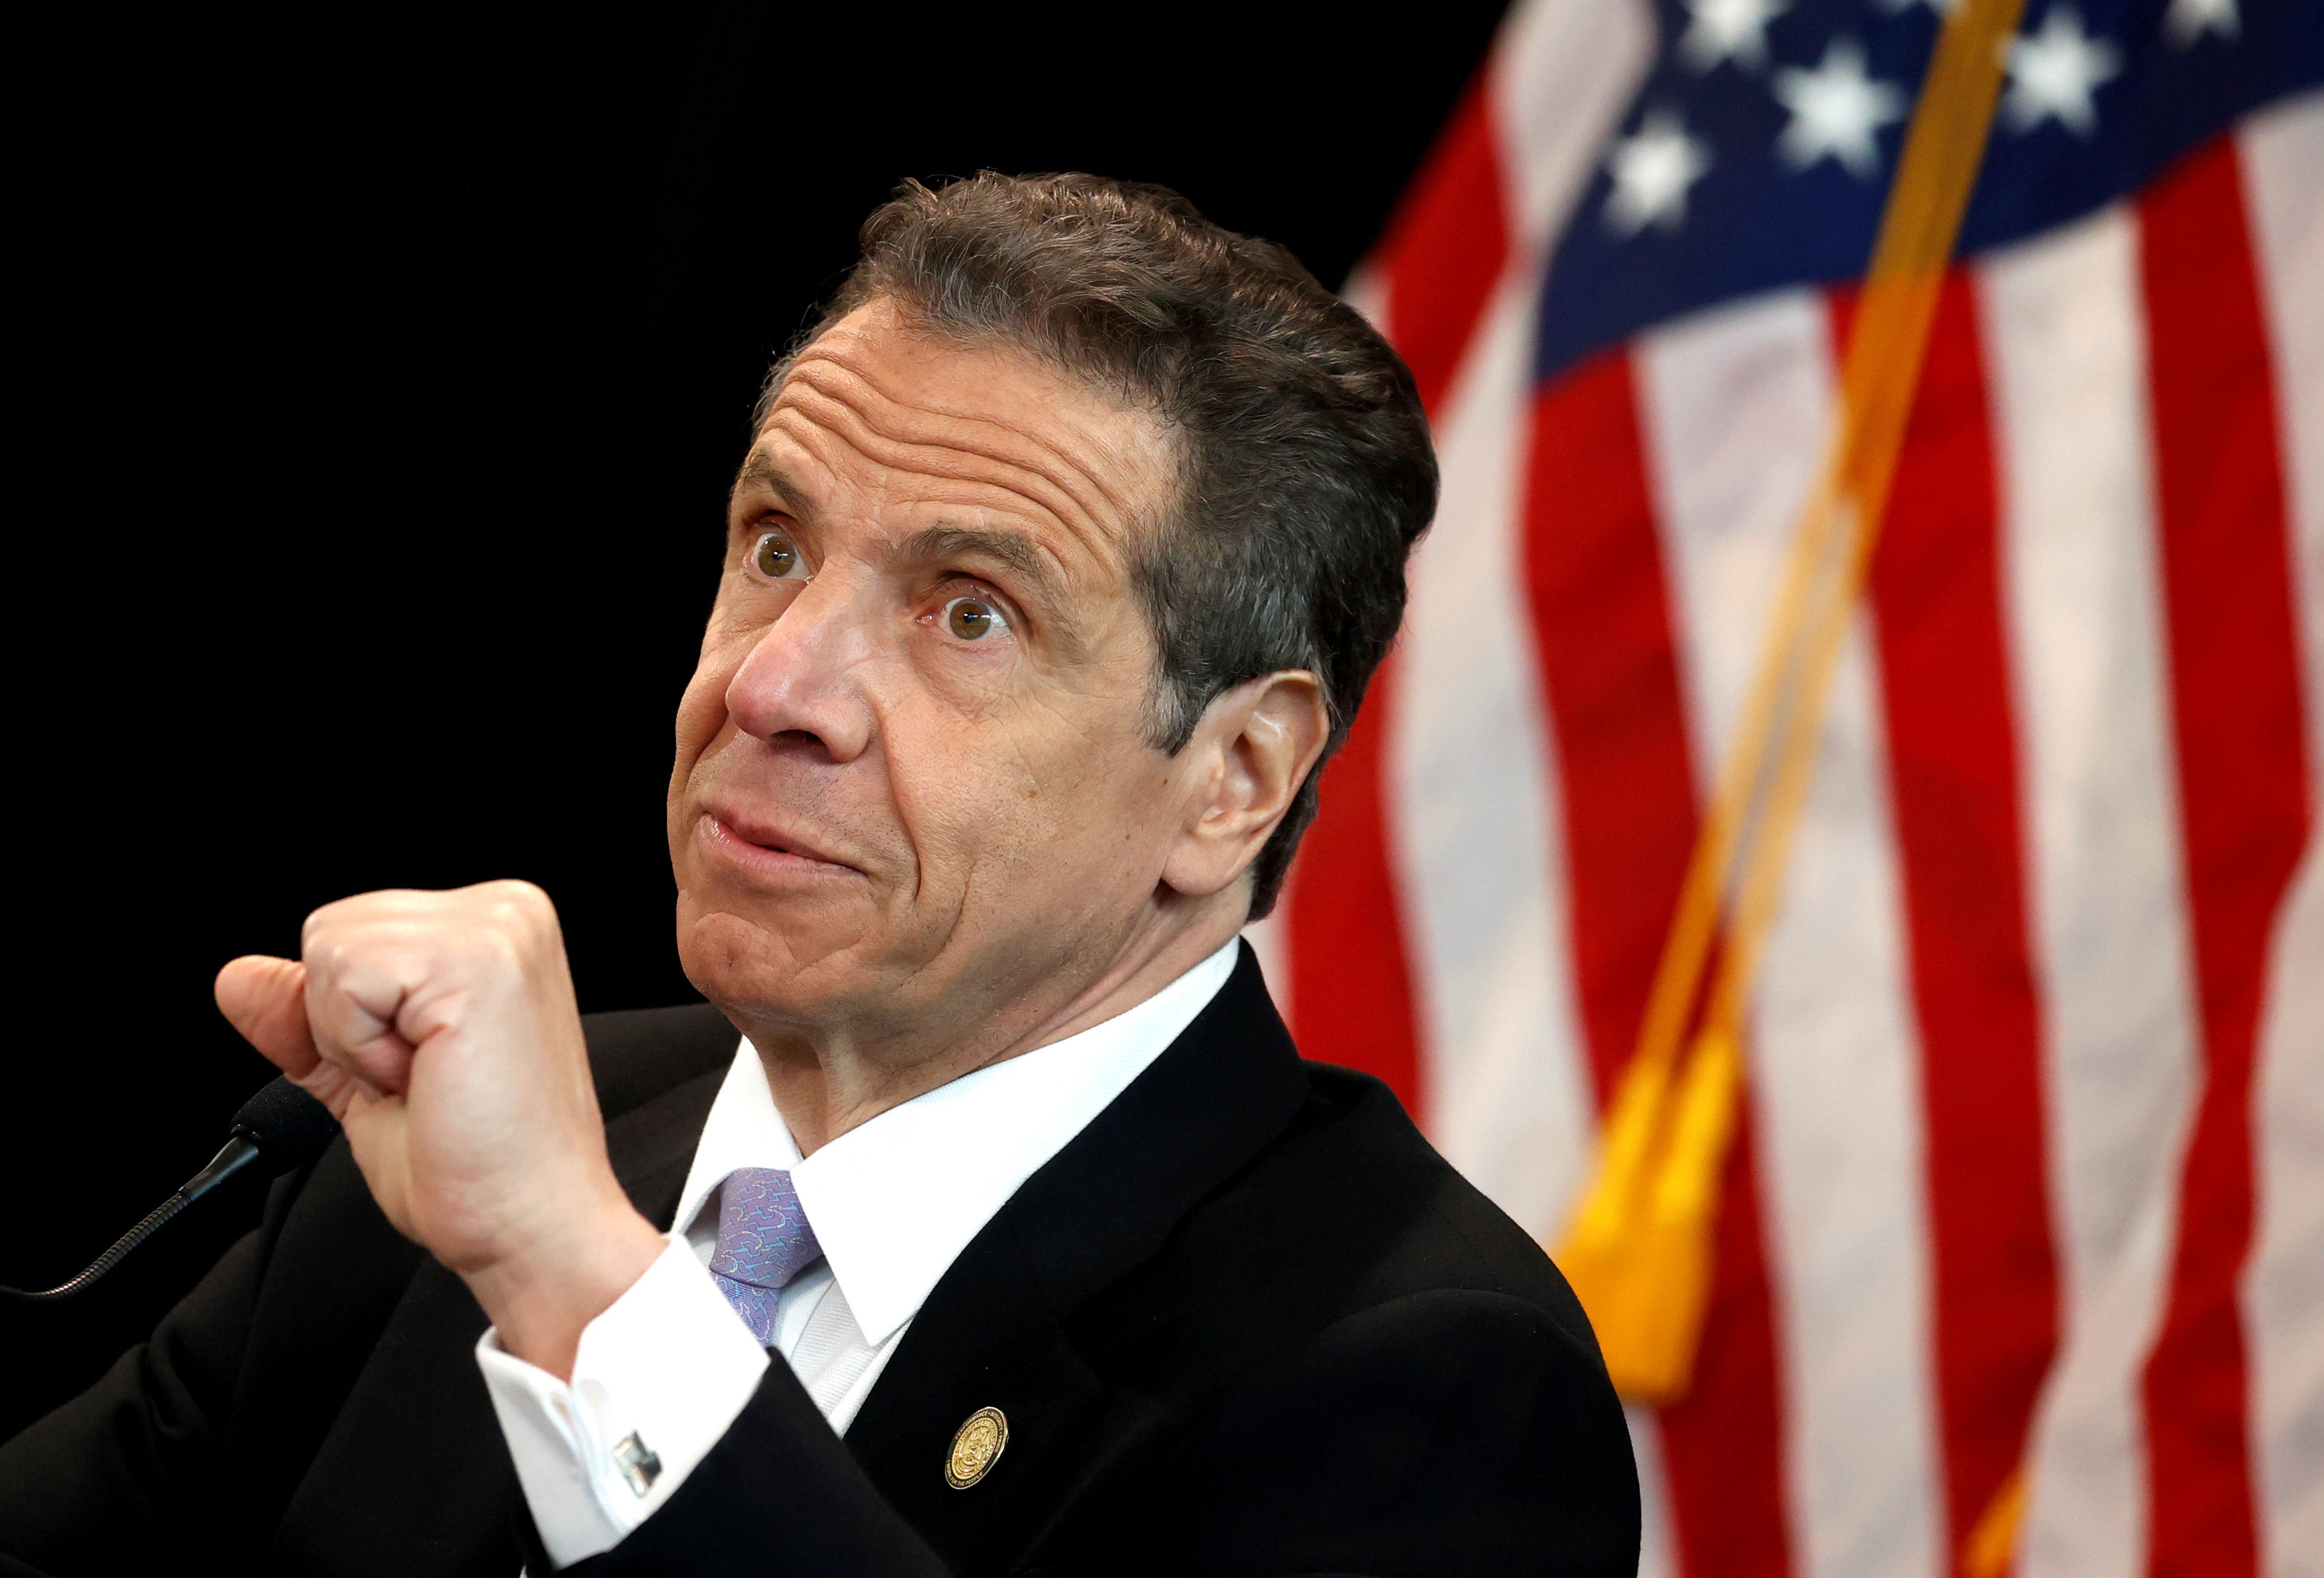 New York Governor Andrew Cuomo holds his daily briefing at New York Medical College during the outbreak of the coronavirus disease (COVID-19) in Valhalla, New York, U.S., May 7, 2020. REUTERS/Mike Segar